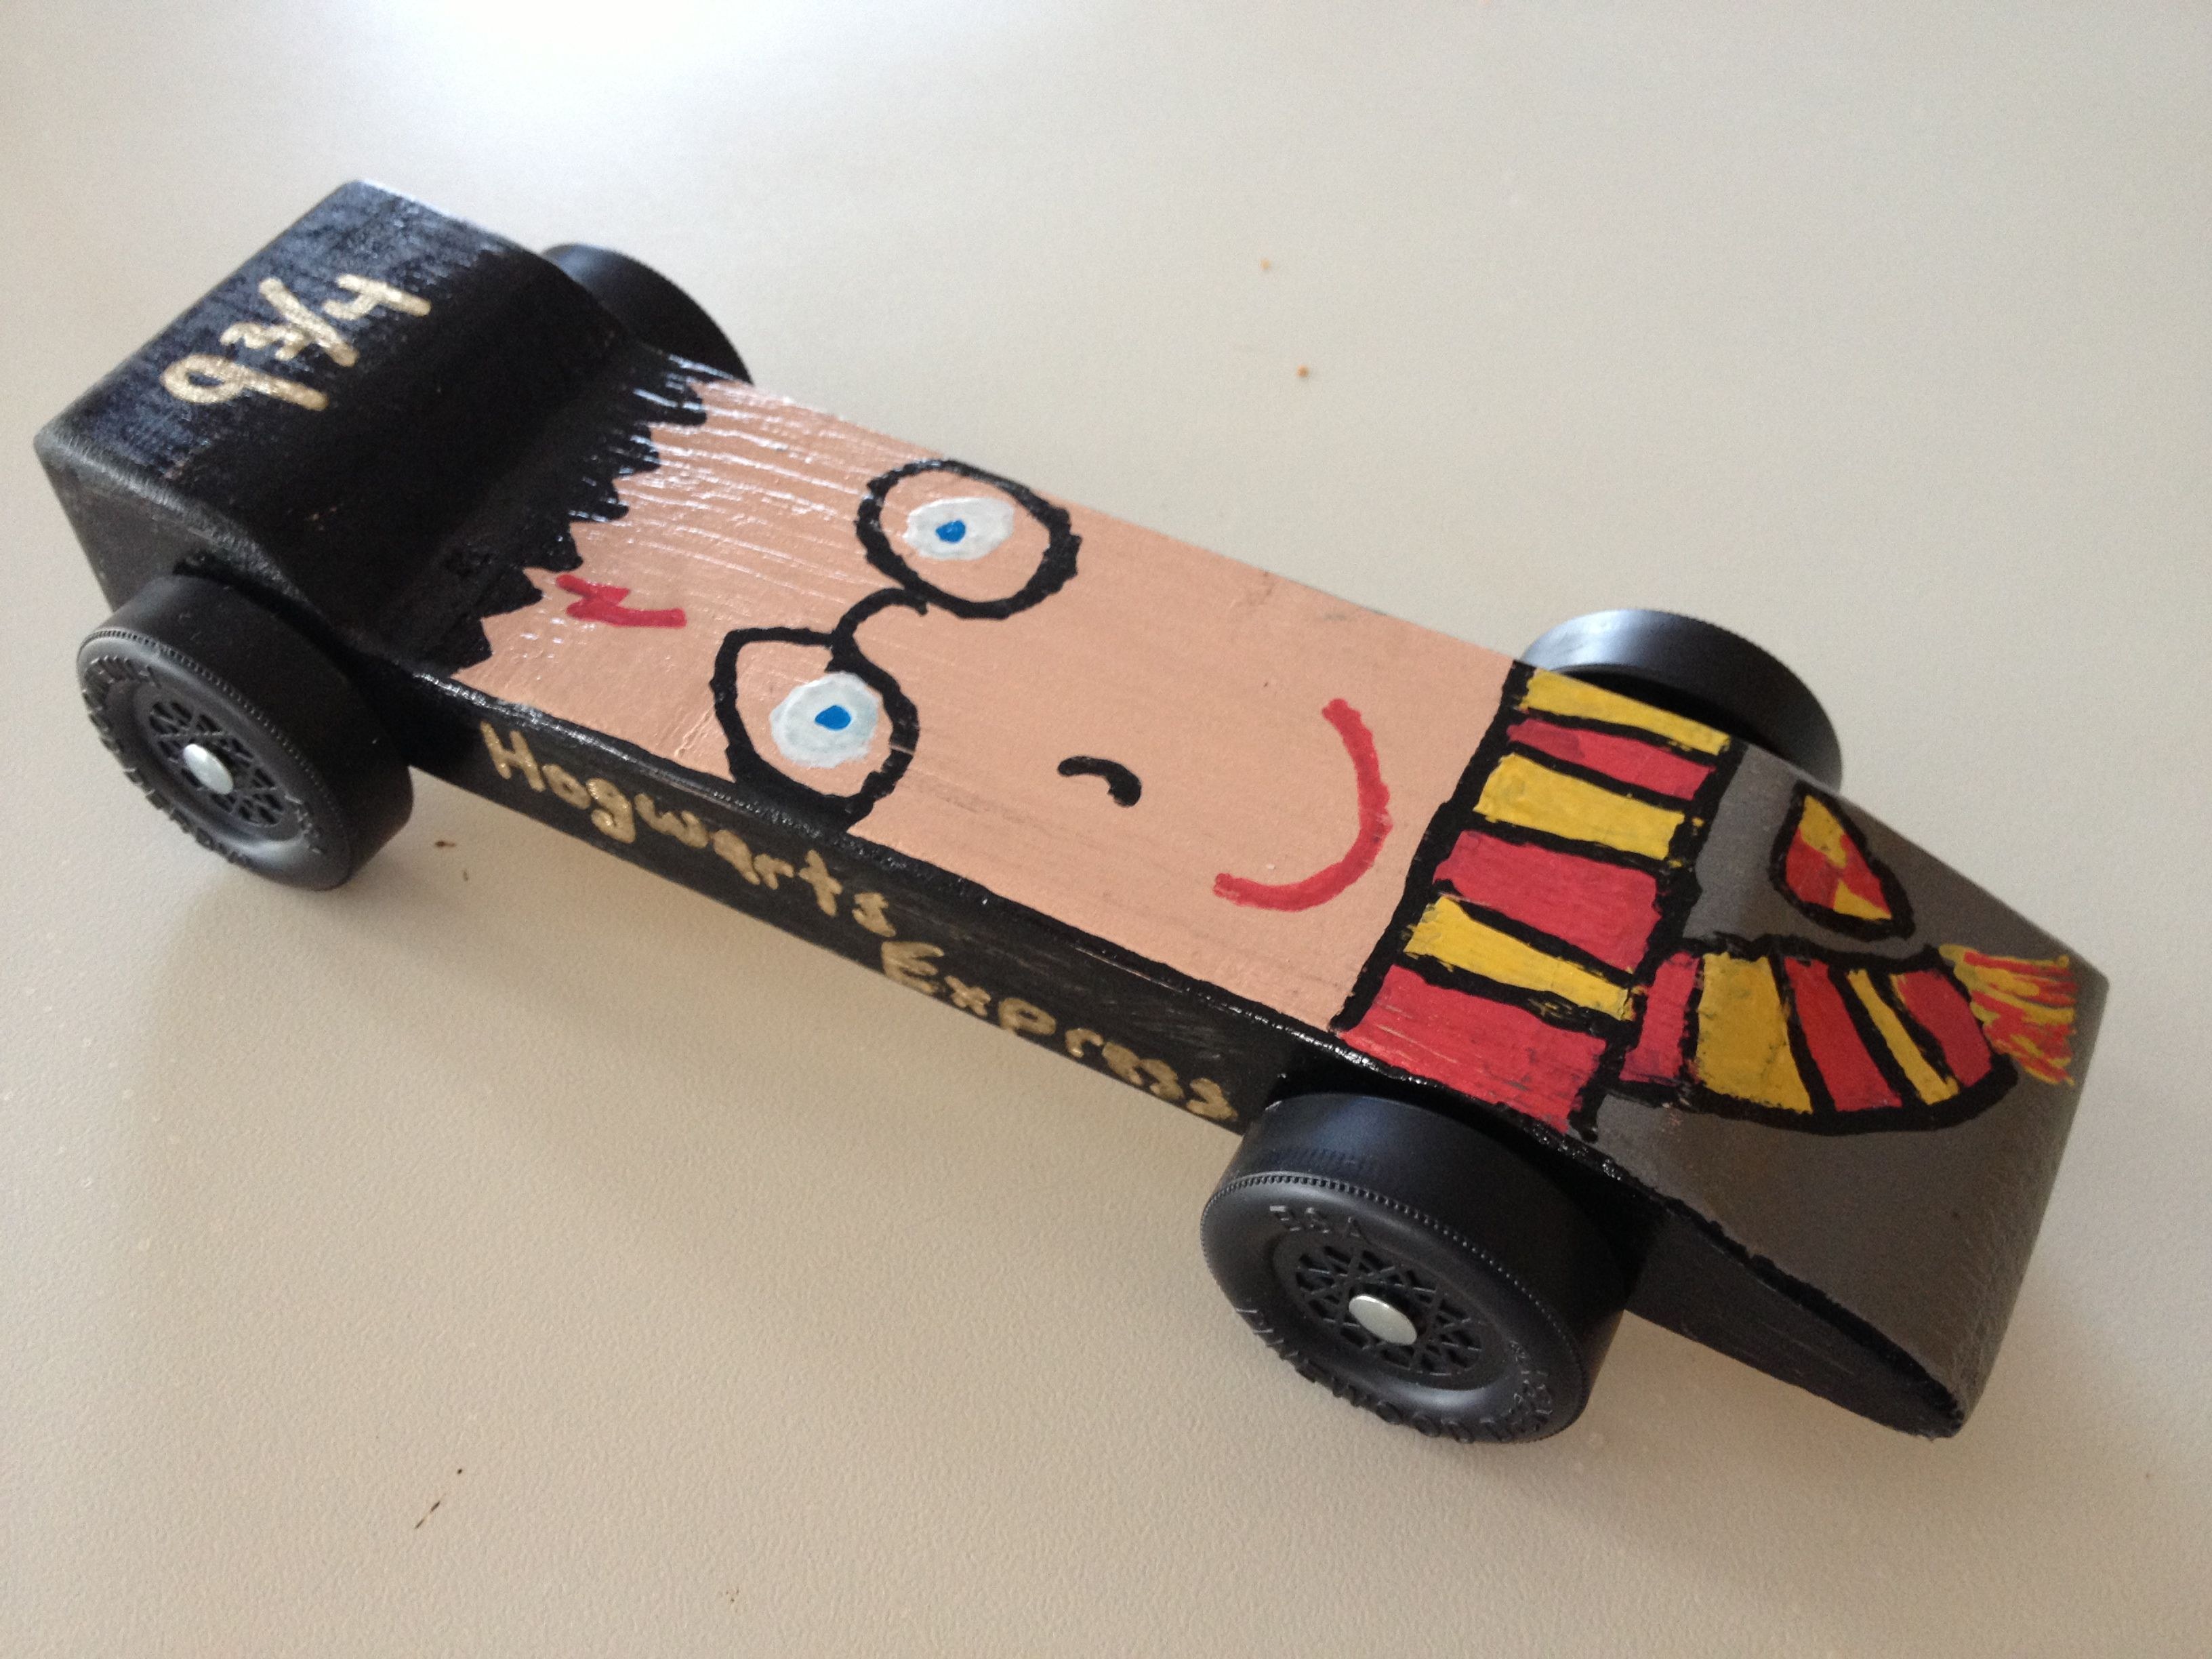 pinewood derby car designs for girls yahoo image search results - Pinewood Derby Car Design Ideas